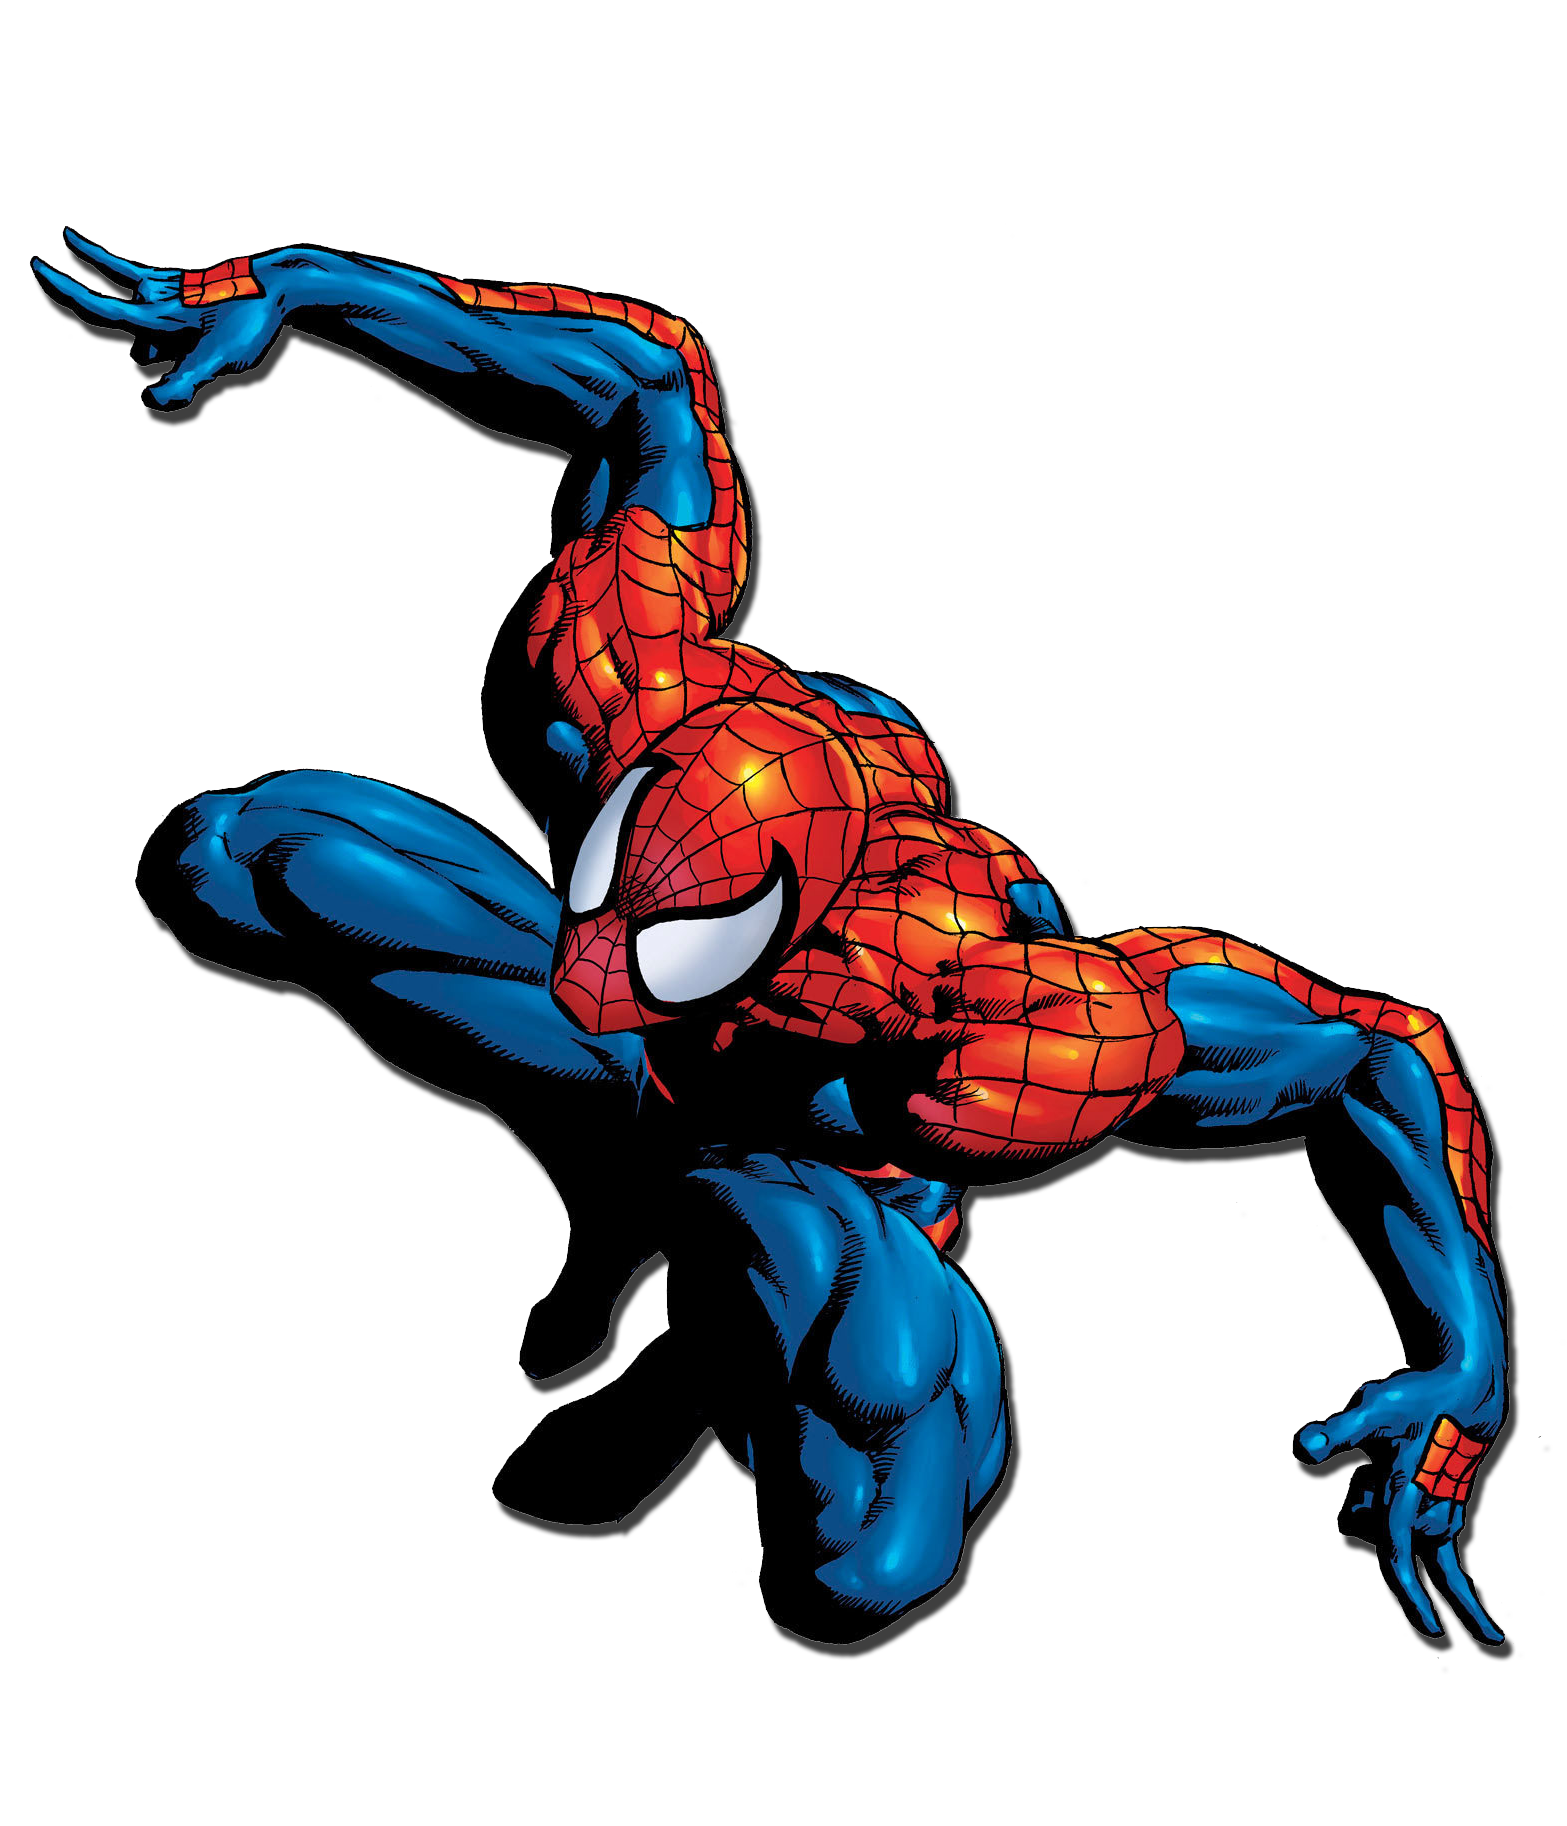 Marvel png images. Image spidey p fanon